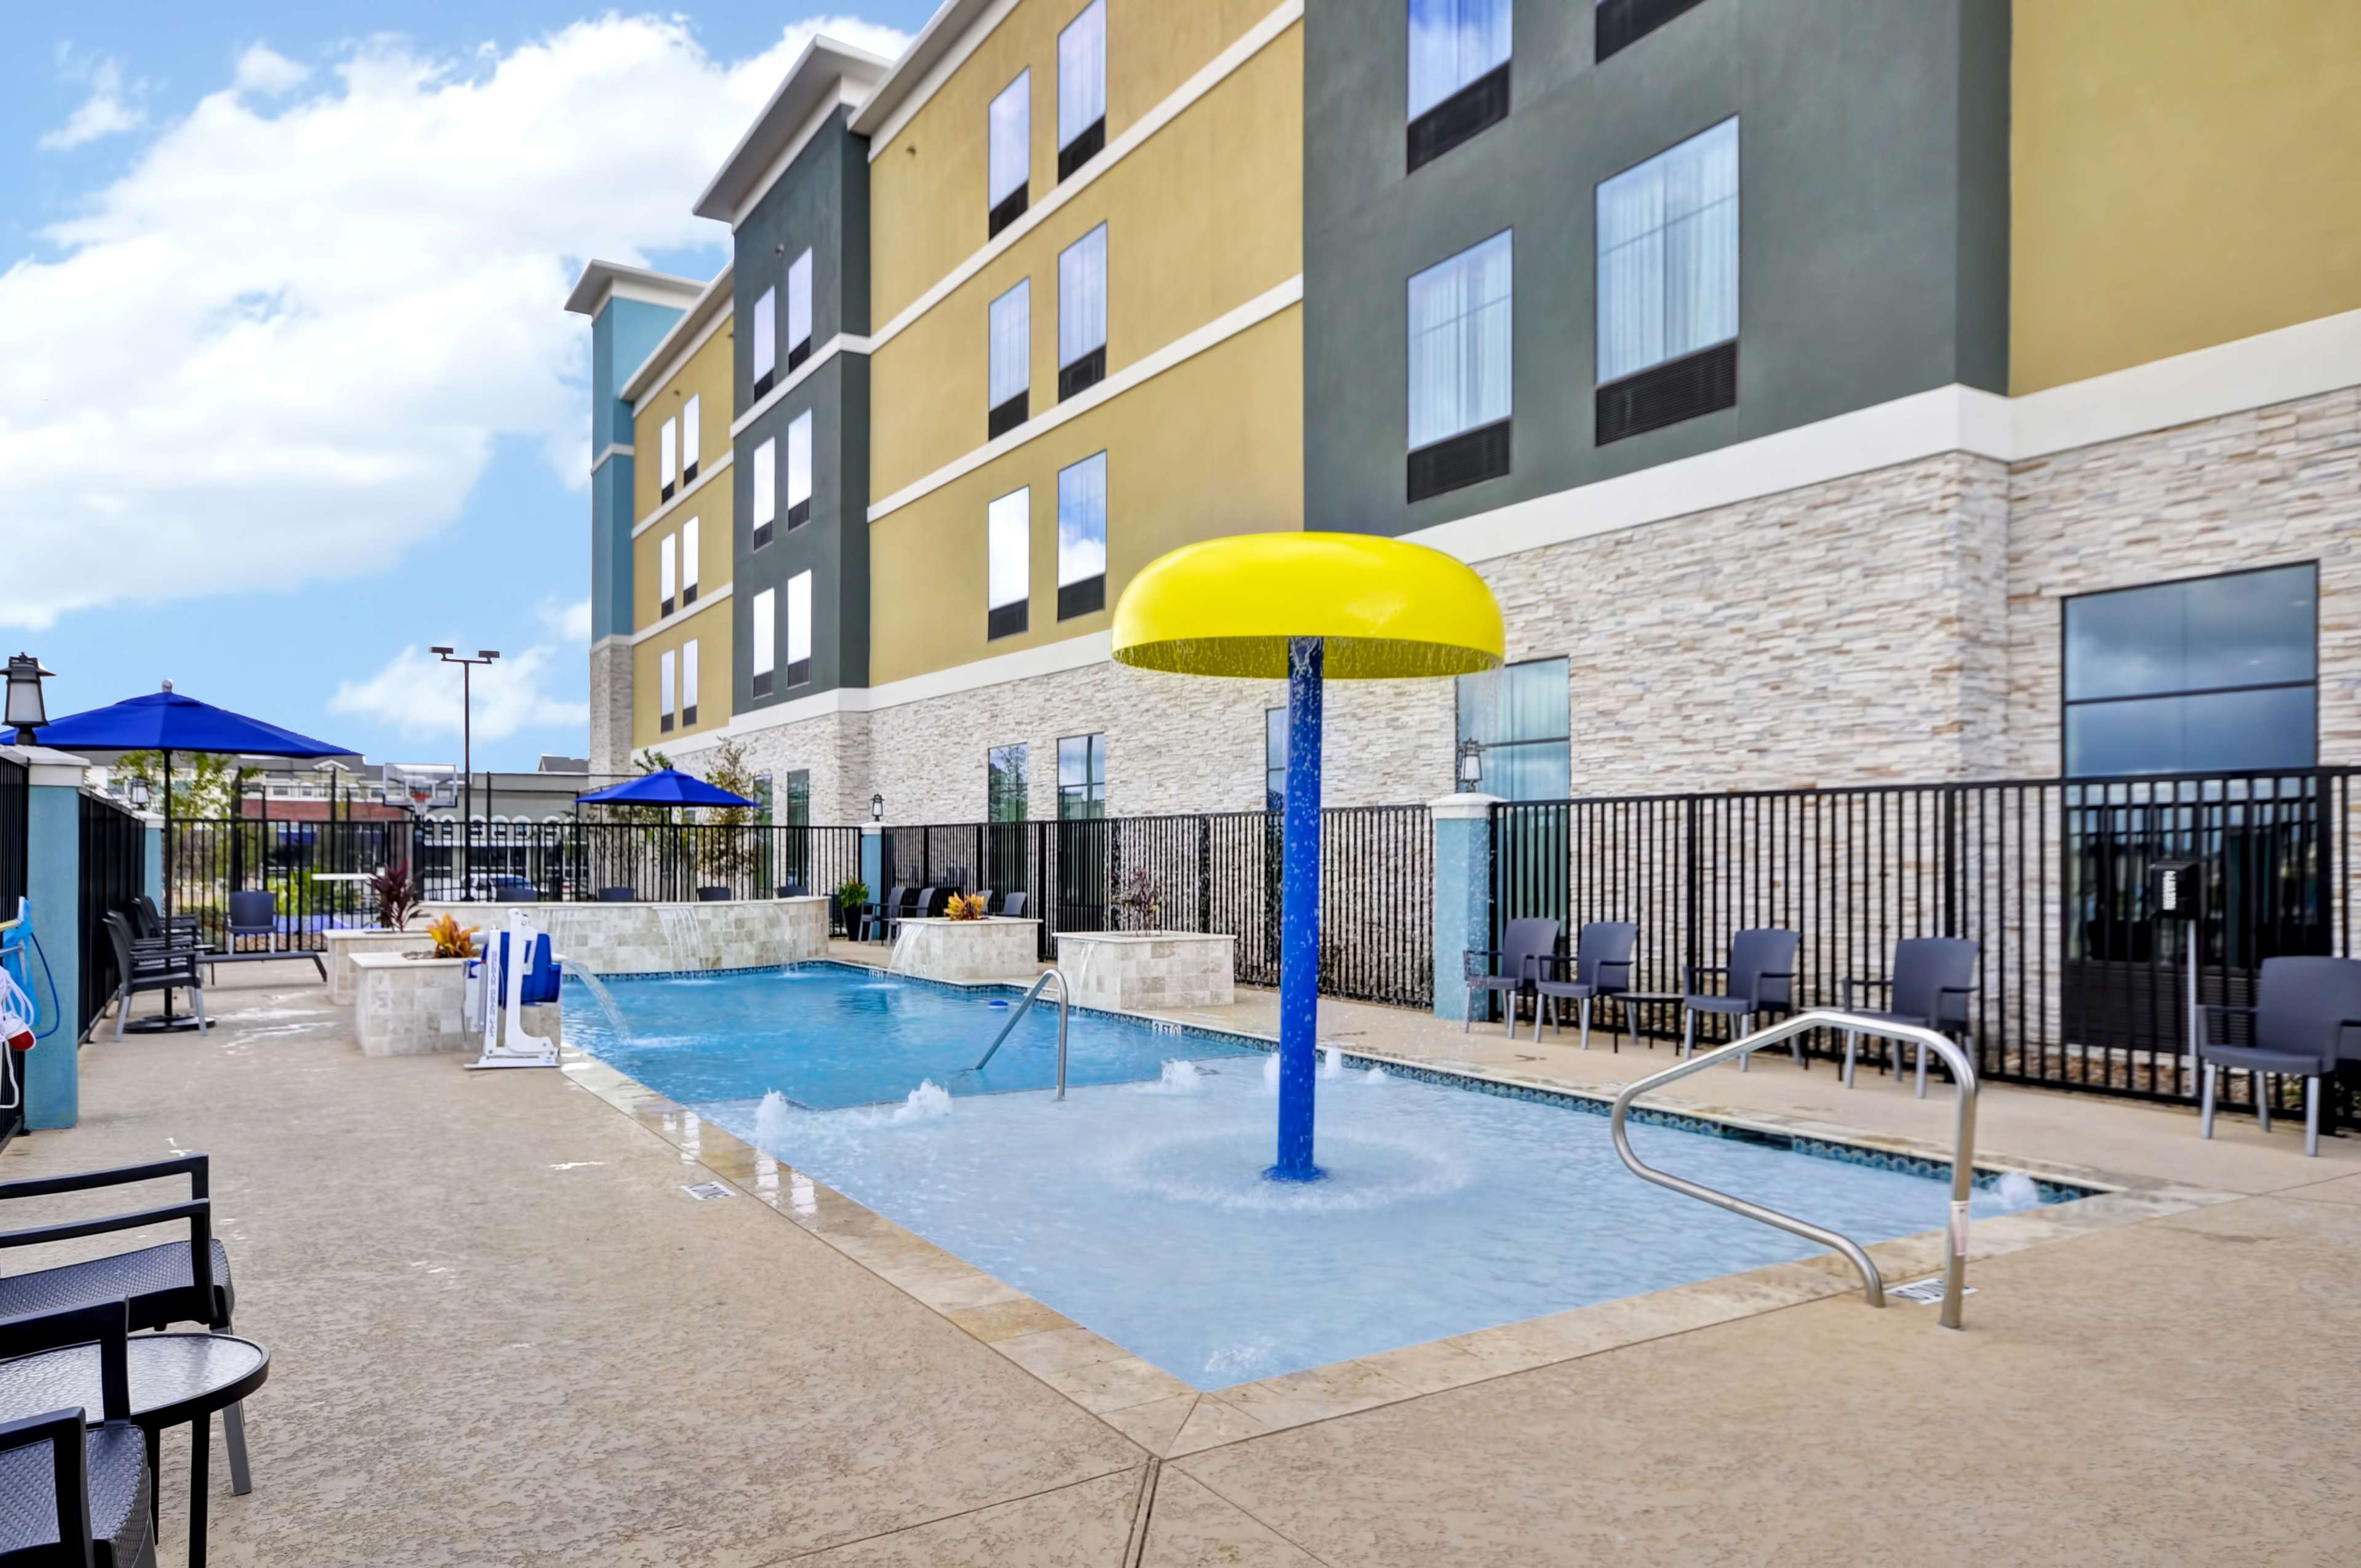 Homewood Suites by Hilton New Braunfels image 18